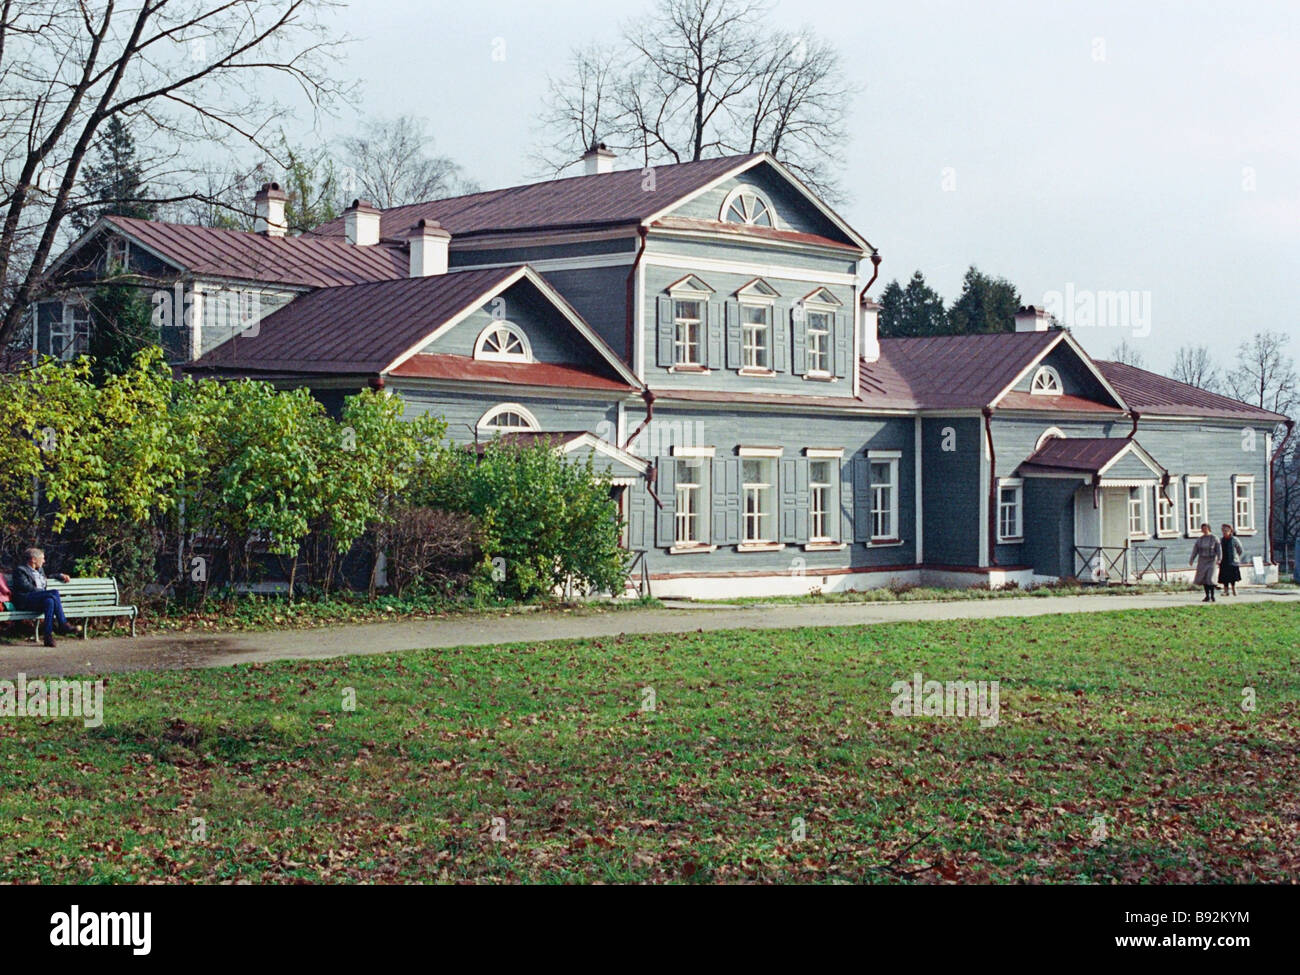 Abramtsevo state historical cultural and literary museum preserve Industrialist merchant and generous patron of - Stock Image